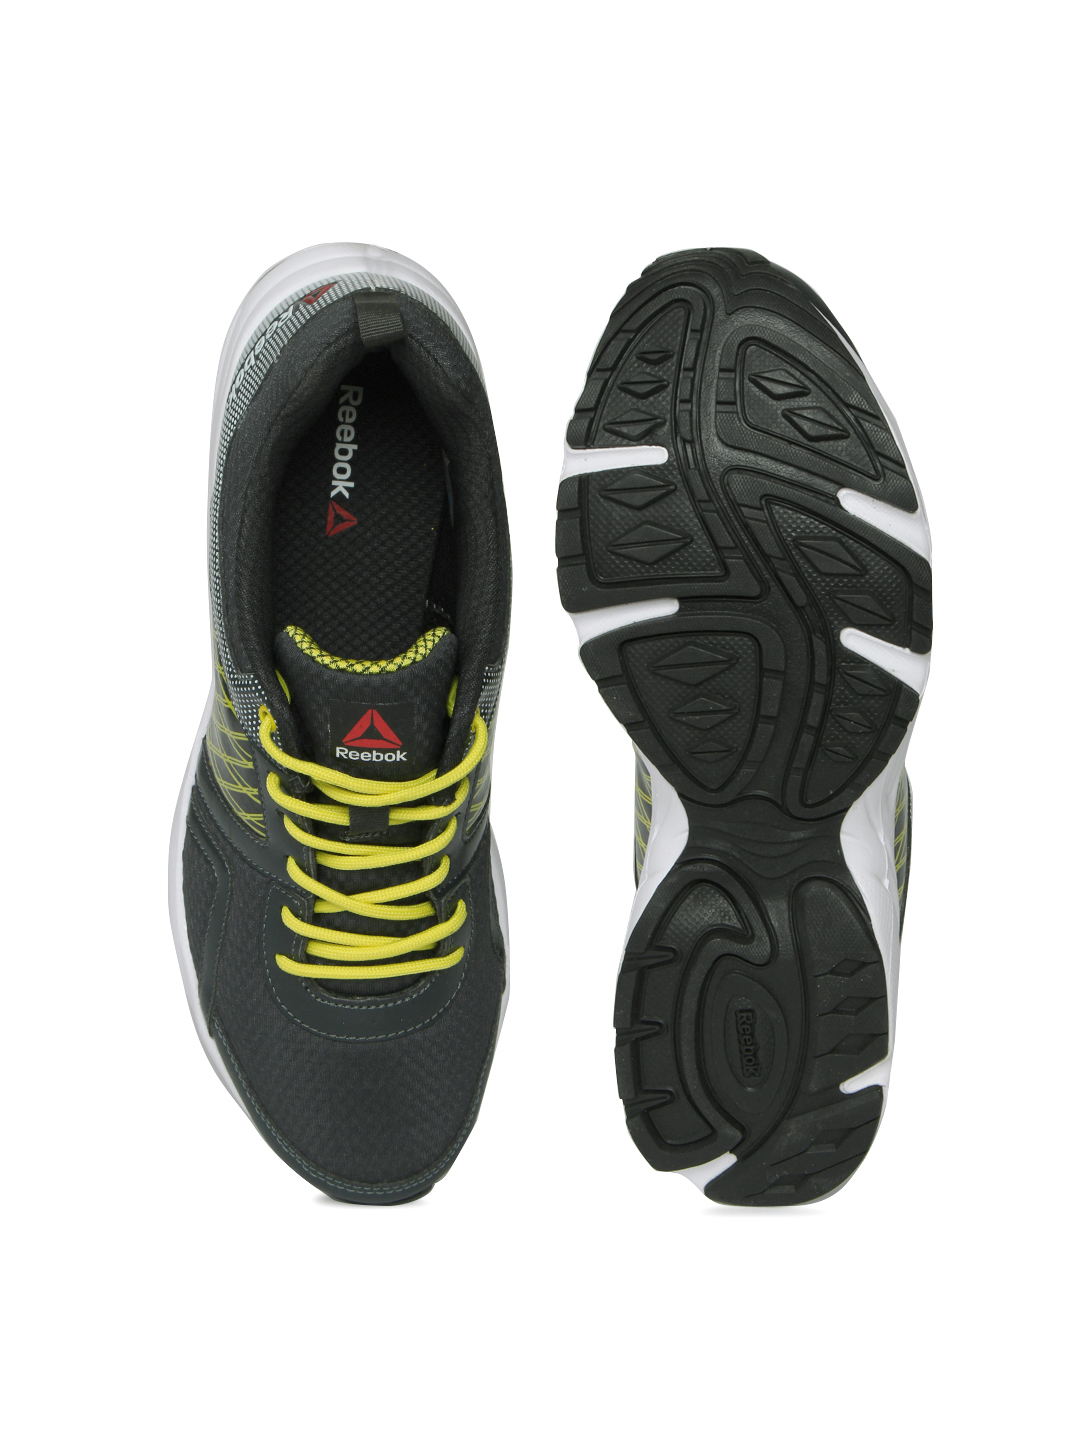 7766b486fdf64b REEBOK Men Charcoal Grey Smooth Flyer Running Shoes Price in India ...